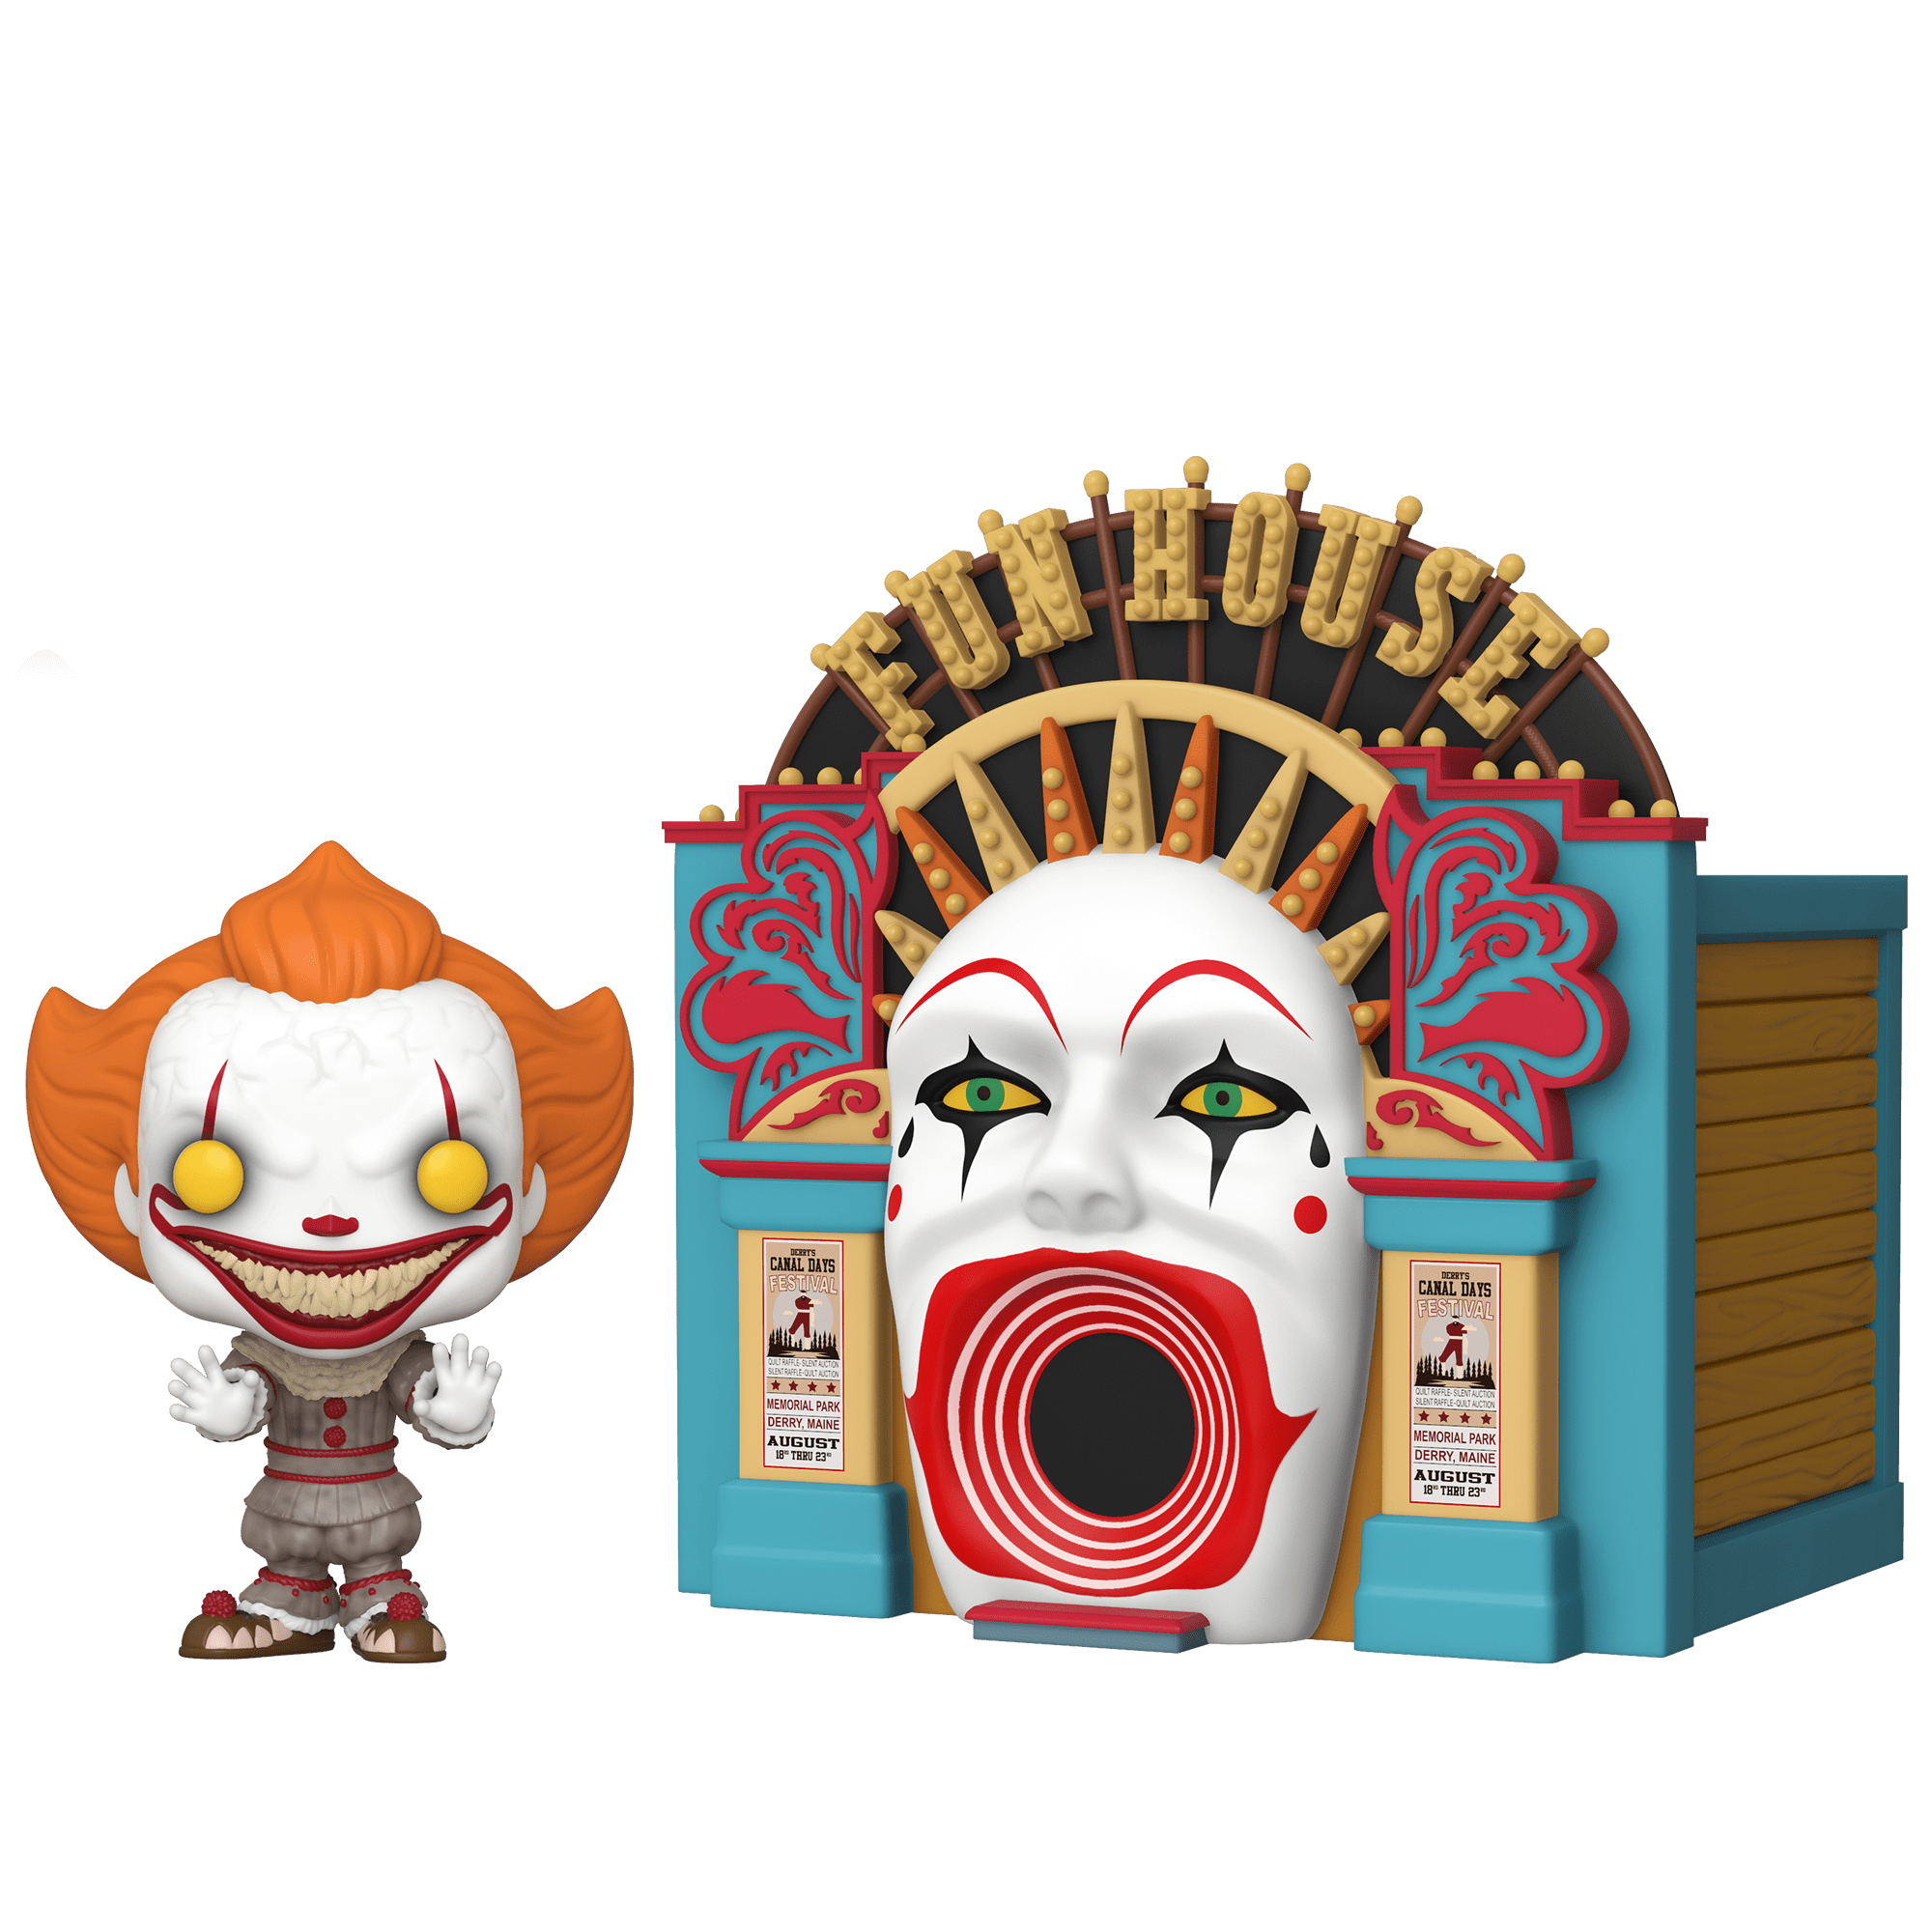 45660_IT2_DemonicPennywiseWFunhouse_POPTOWN_GLAM-1-caee7cbc25d45784bb278f7d87db7737.png